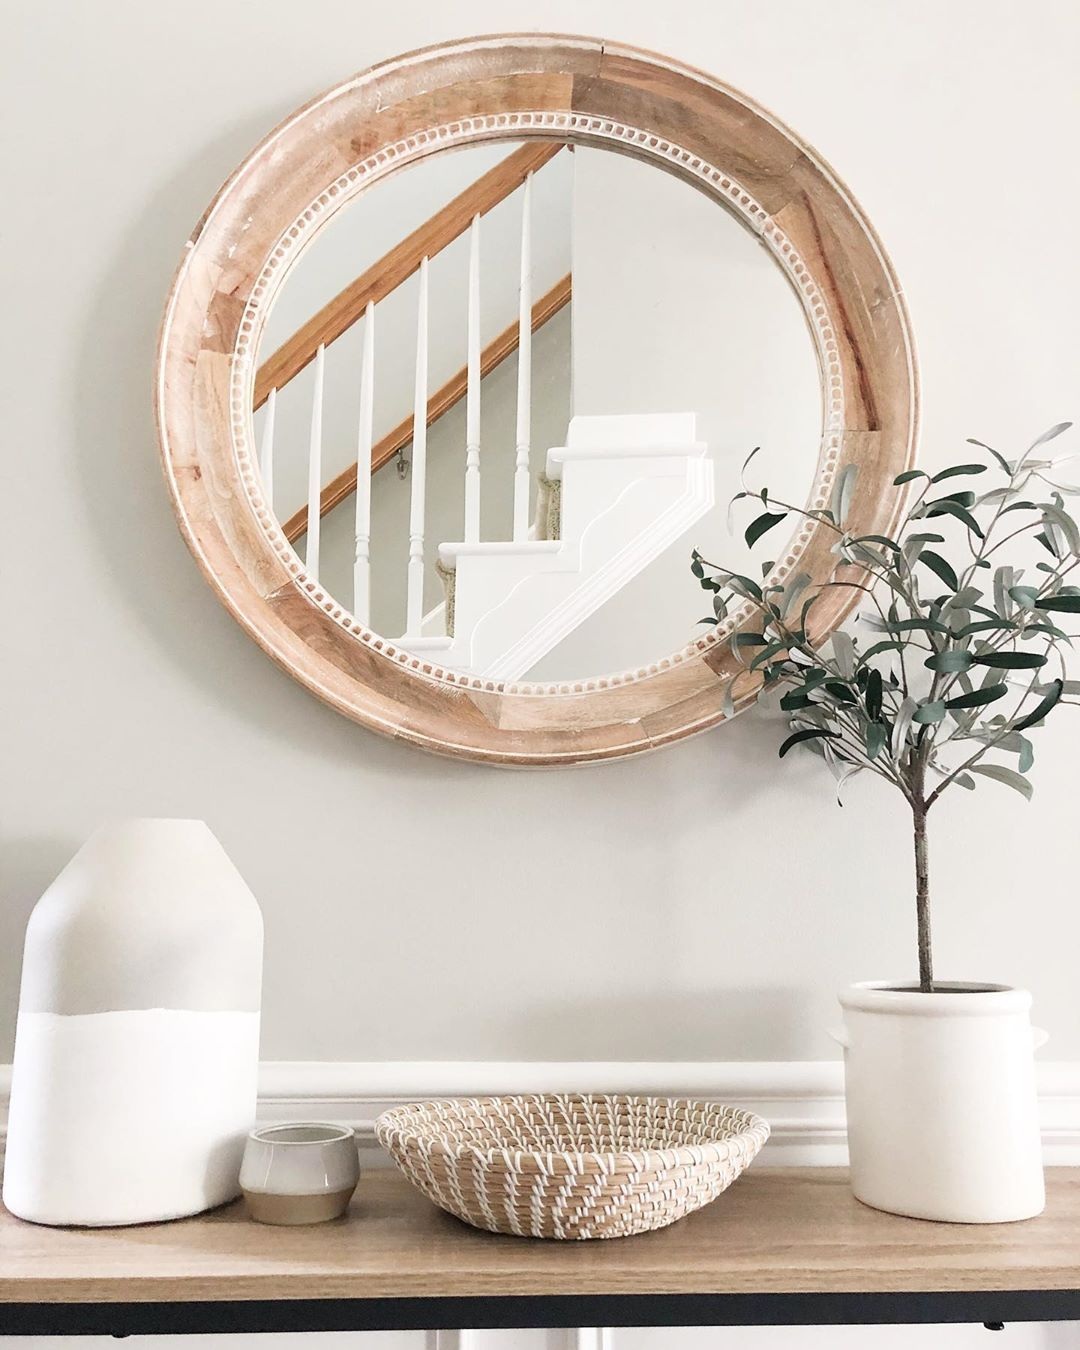 "sophie | house to home (@housetohome_design) posted on Instagram: ""An entryway table is one of my favorites to style! Not only do I like making it look pretty, but also functional 🙌🏼 This catch-all seagrass…"" • Jul 29, 2020 at 10:05pm UTC"